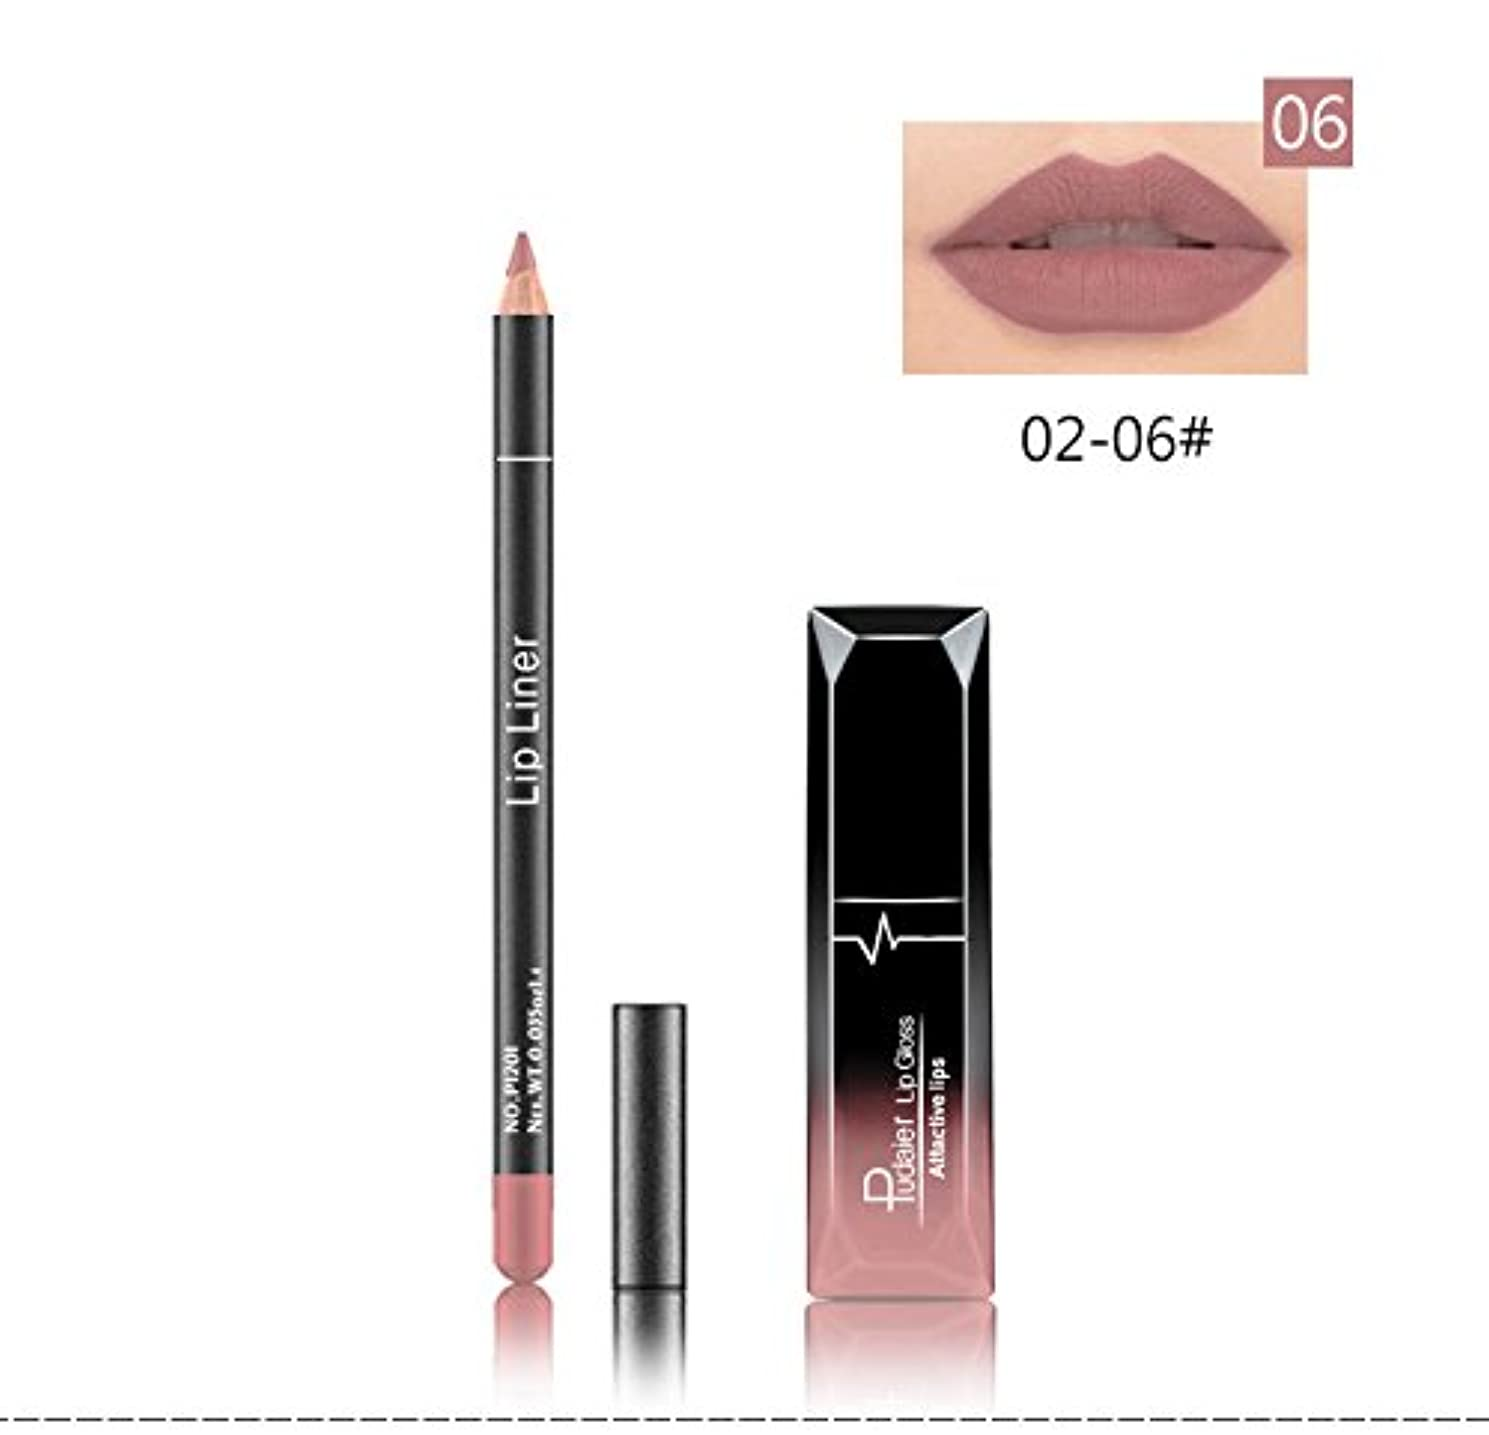 適応的ロシアリスク(06) Pudaier 1pc Matte Liquid Lipstick Cosmetic Lip Kit+ 1 Pc Nude Lip Liner Pencil MakeUp Set Waterproof Long...